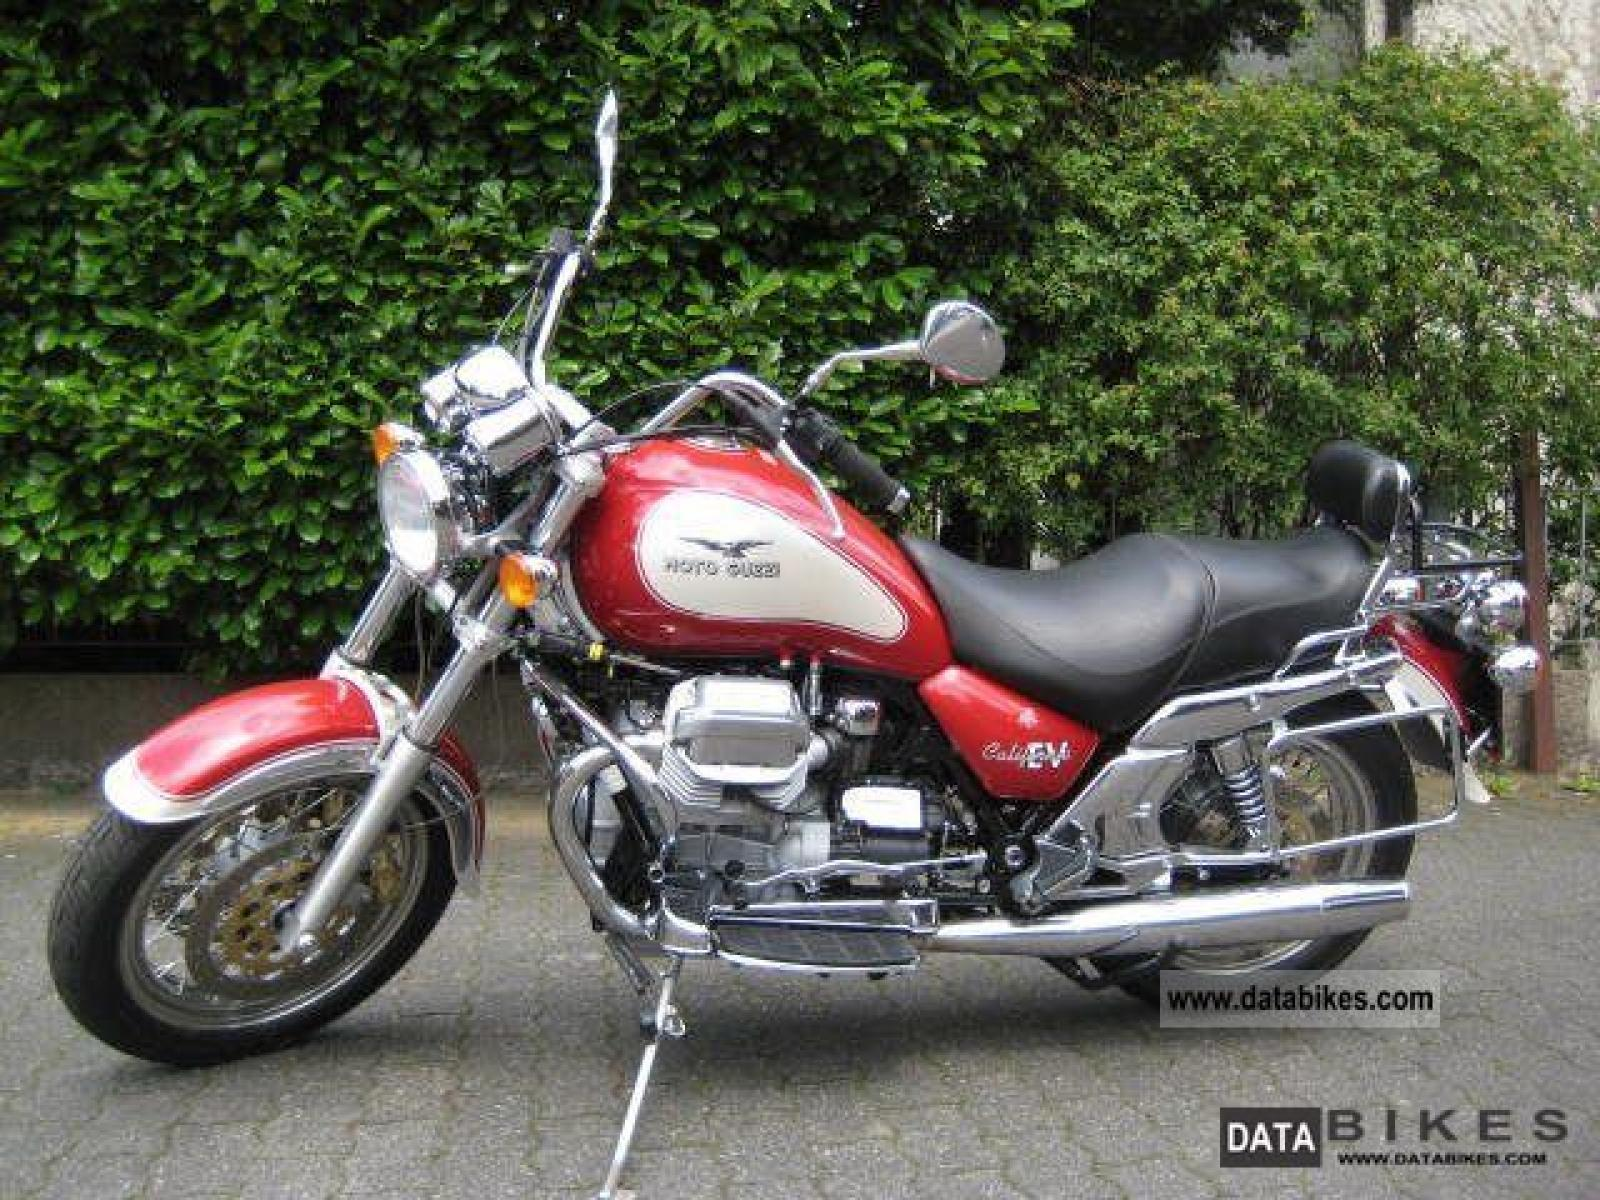 Moto Guzzi California 1100 Injection 1994 images #108134